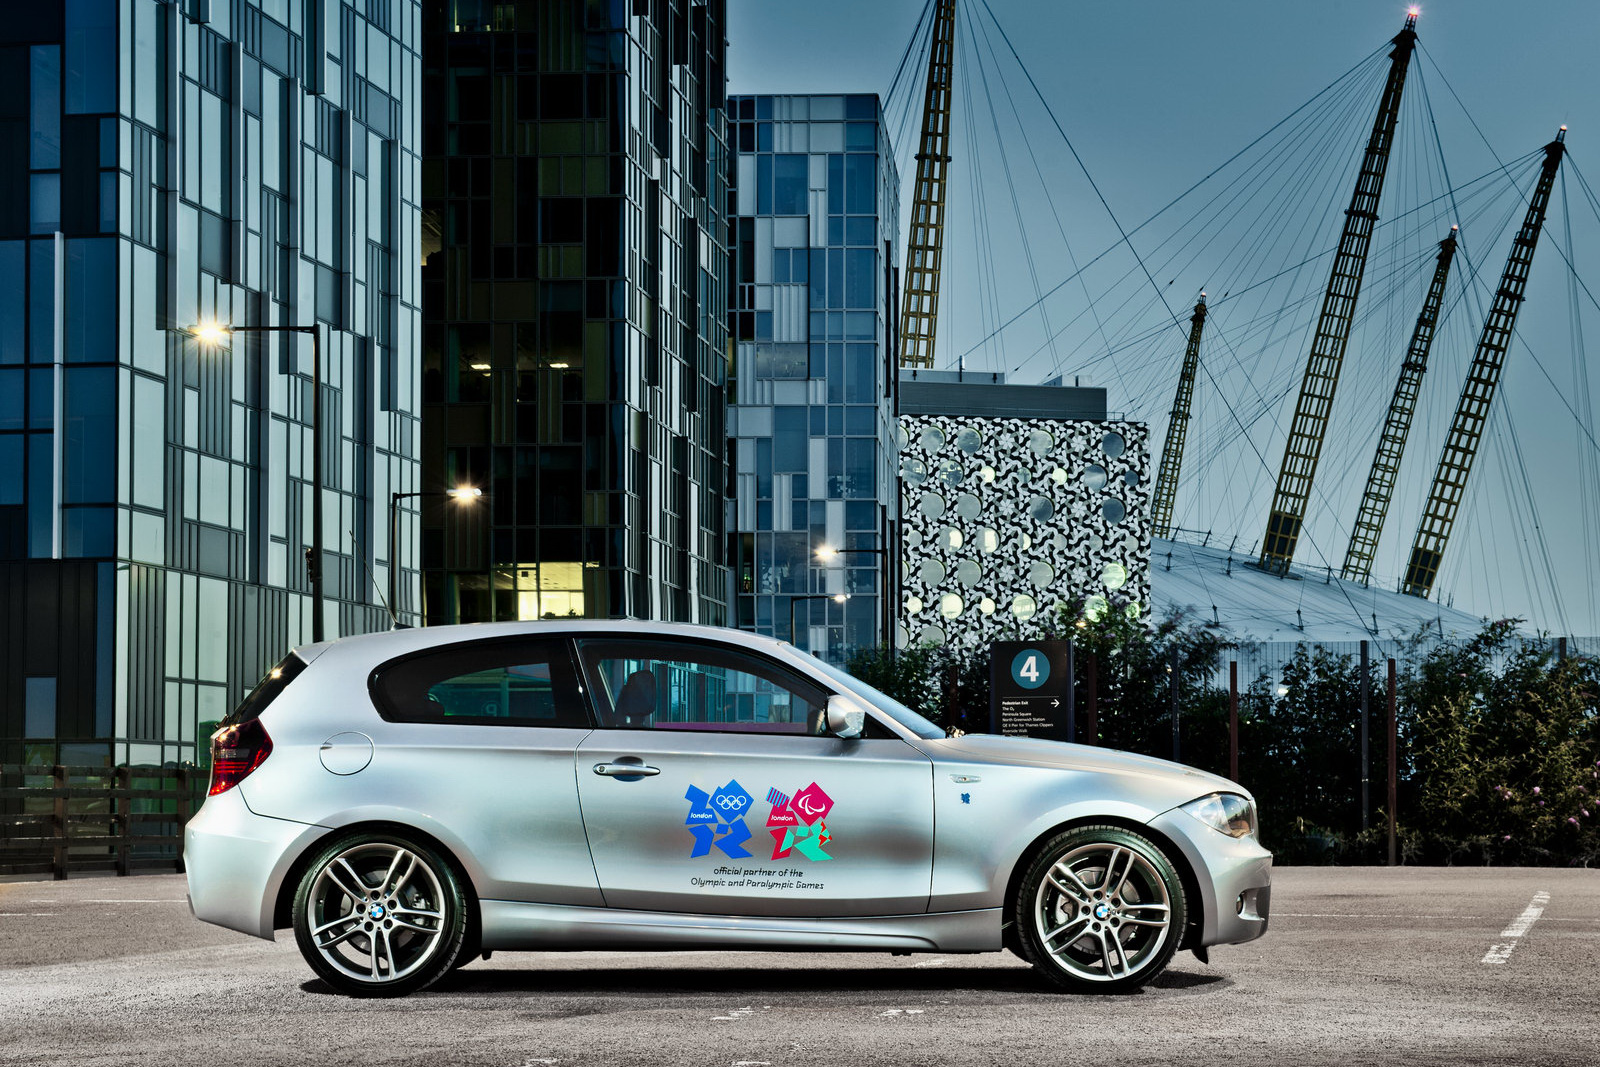 2012 Bmw London Olympics Edition New Car Used Reviews 1 Series Special Editions - Medium